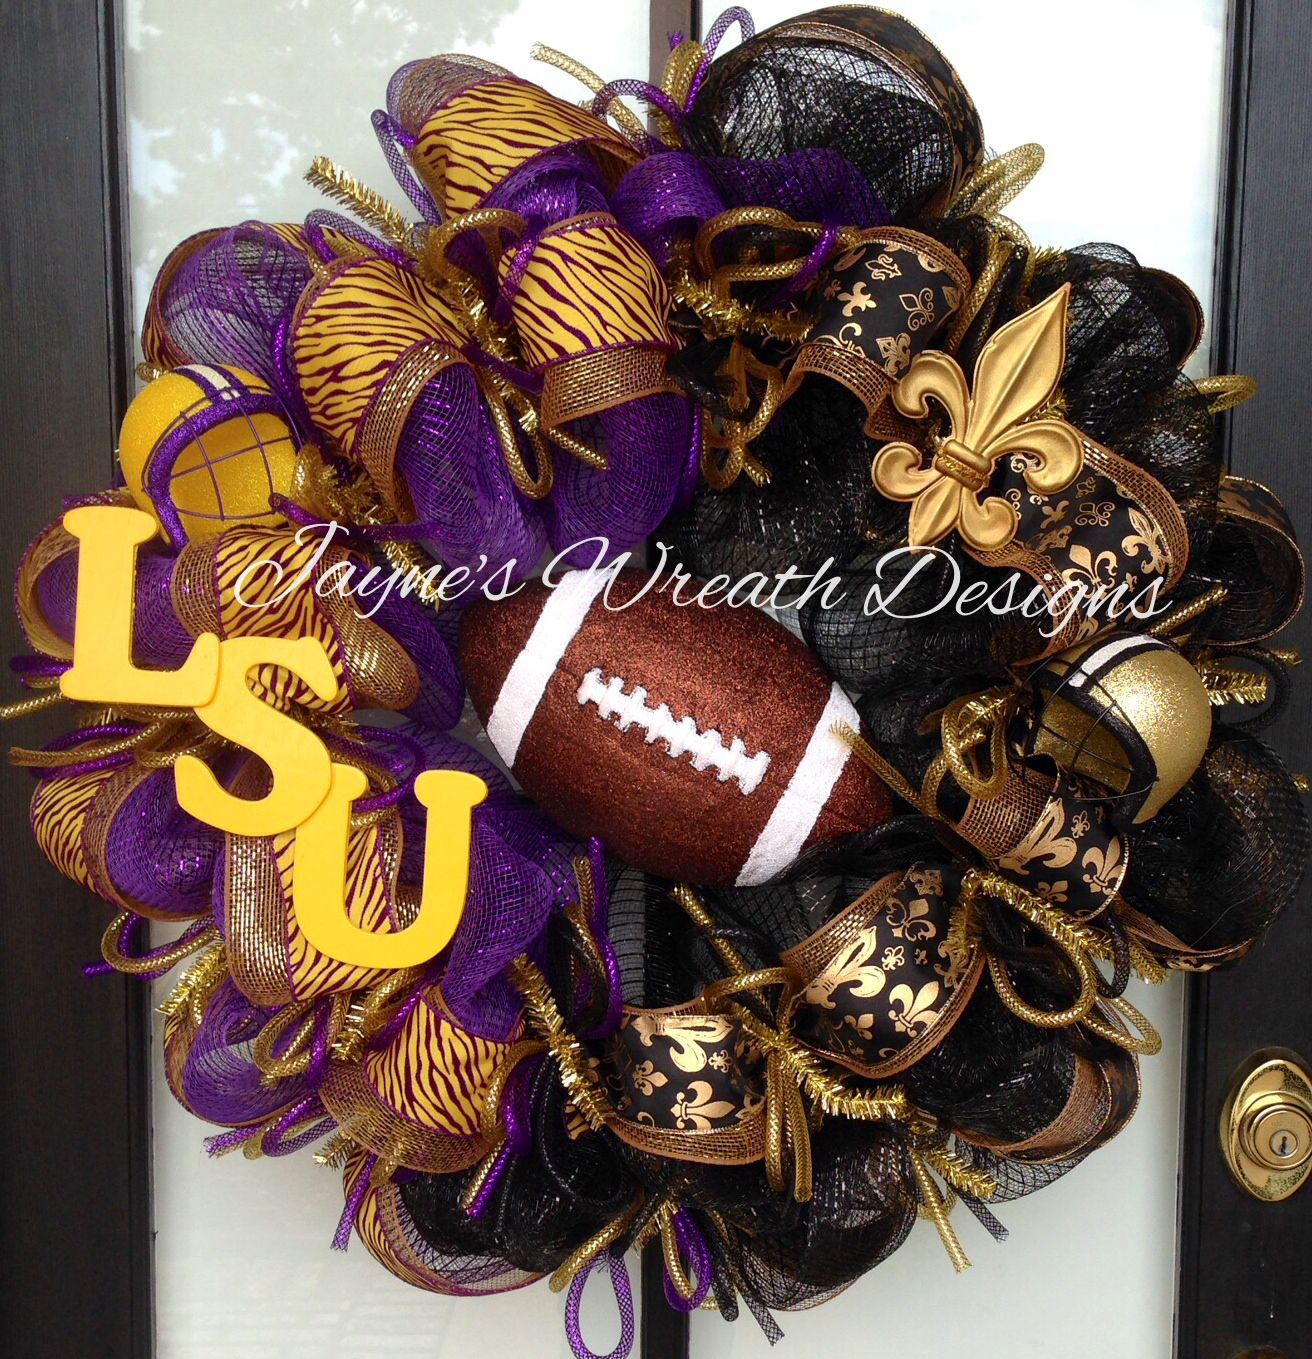 LSU/ Saints Combo Football Wreath with helmets, Fleur de Lis, football, and LSU letters